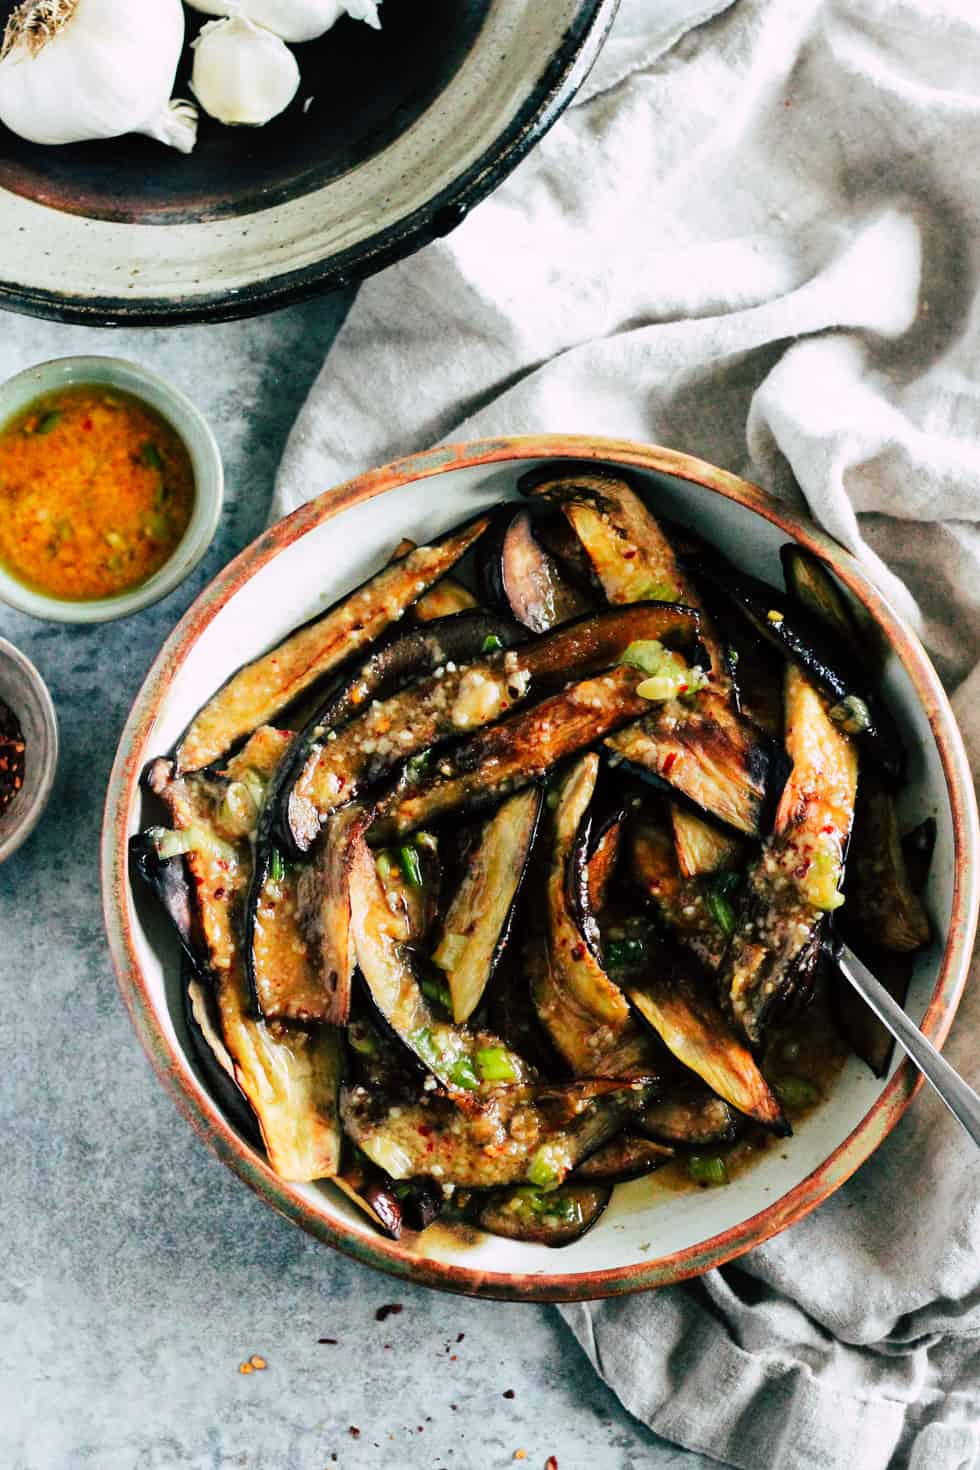 Roasted eggplant in ceramic dish with bowl of brown butter miso sauce and garlic.